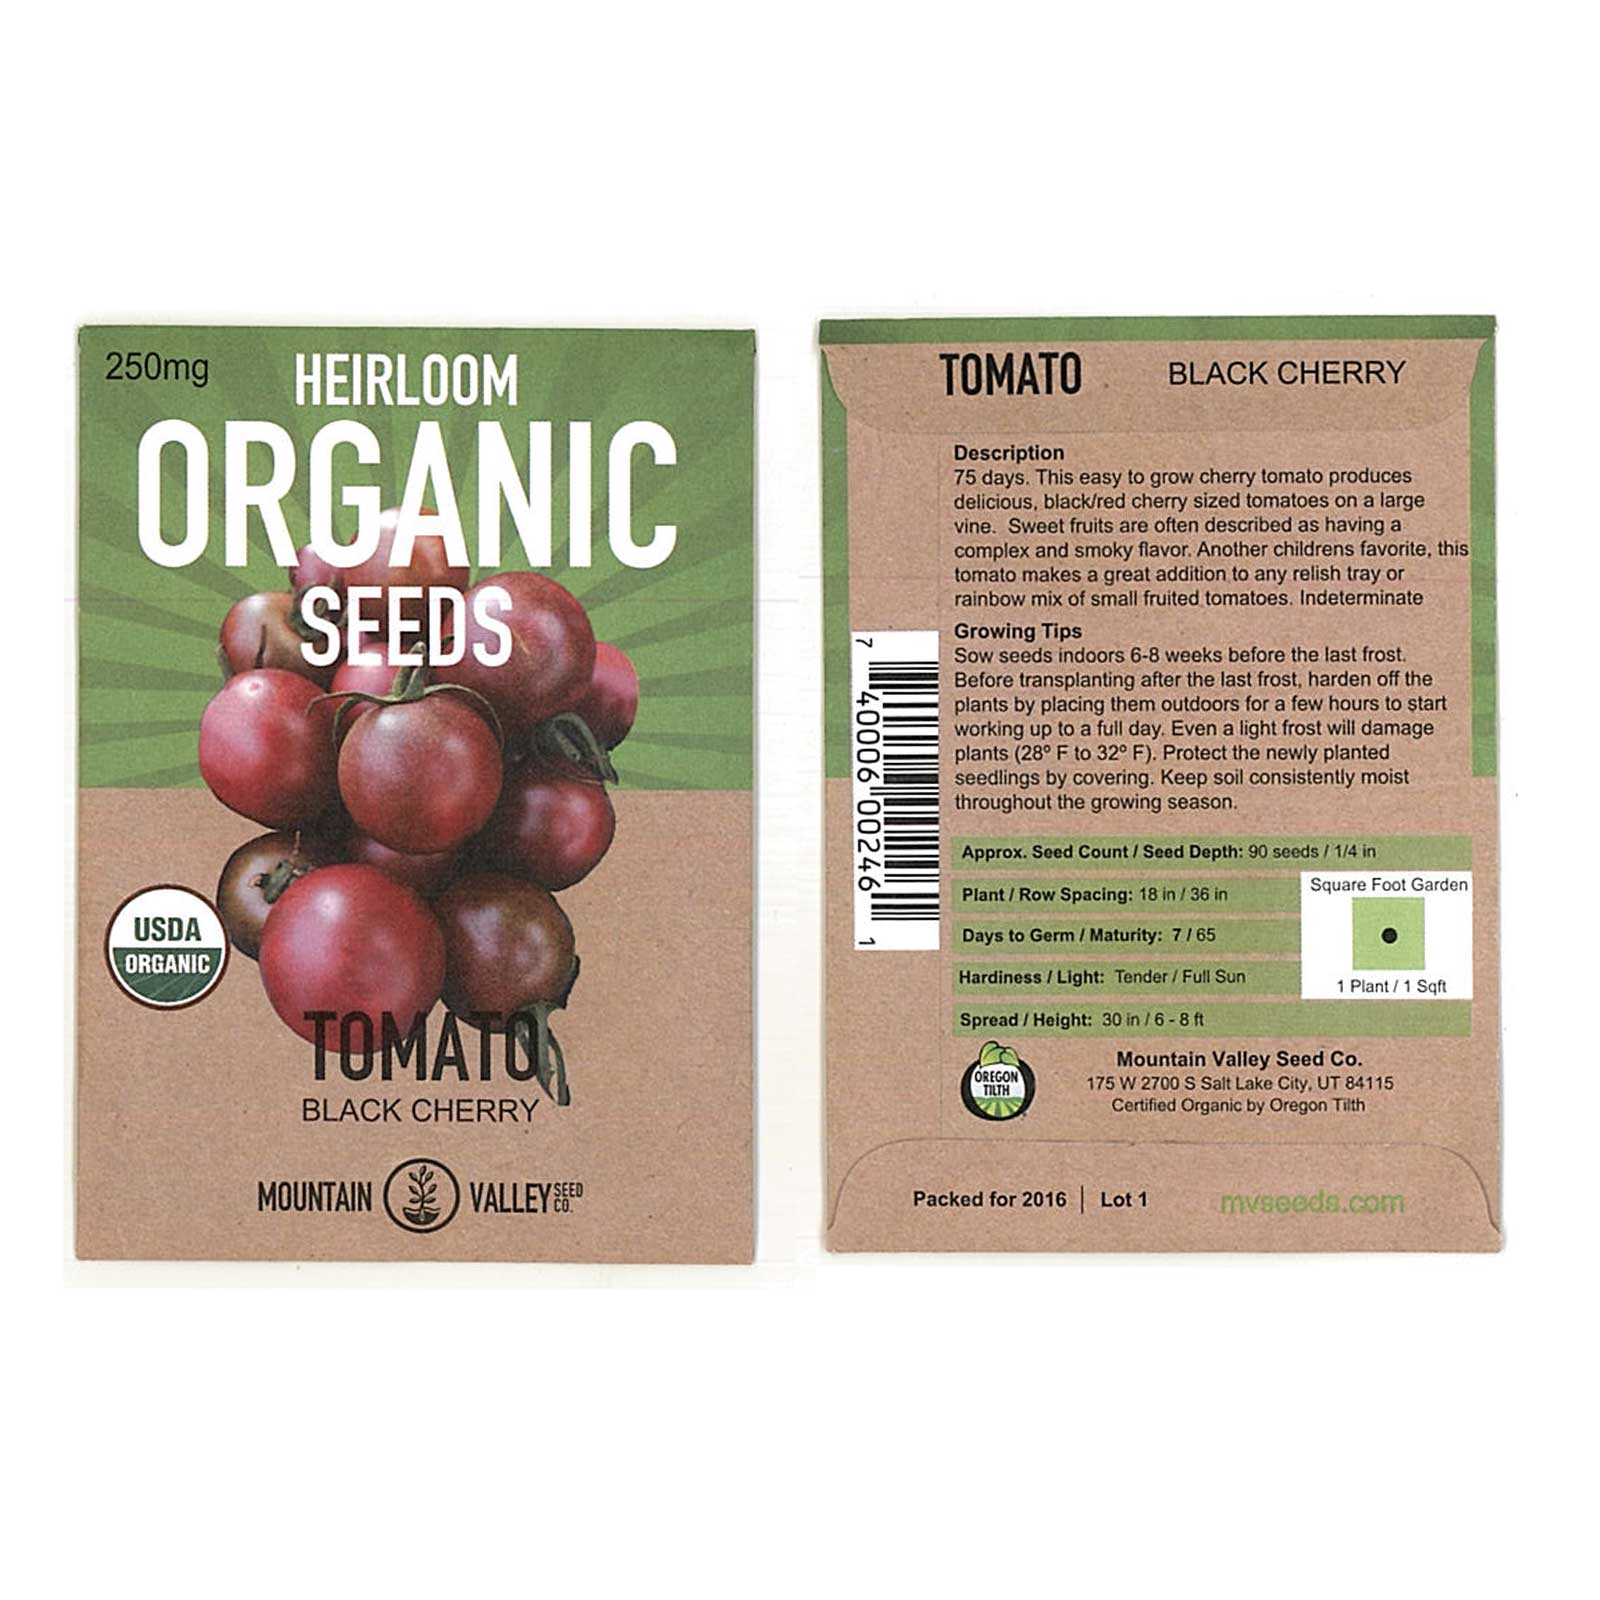 Tomato Garden Seeds -Black Cherry - 250 mg Packet - Non-GMO, Organic Vegetable Gardening Seed